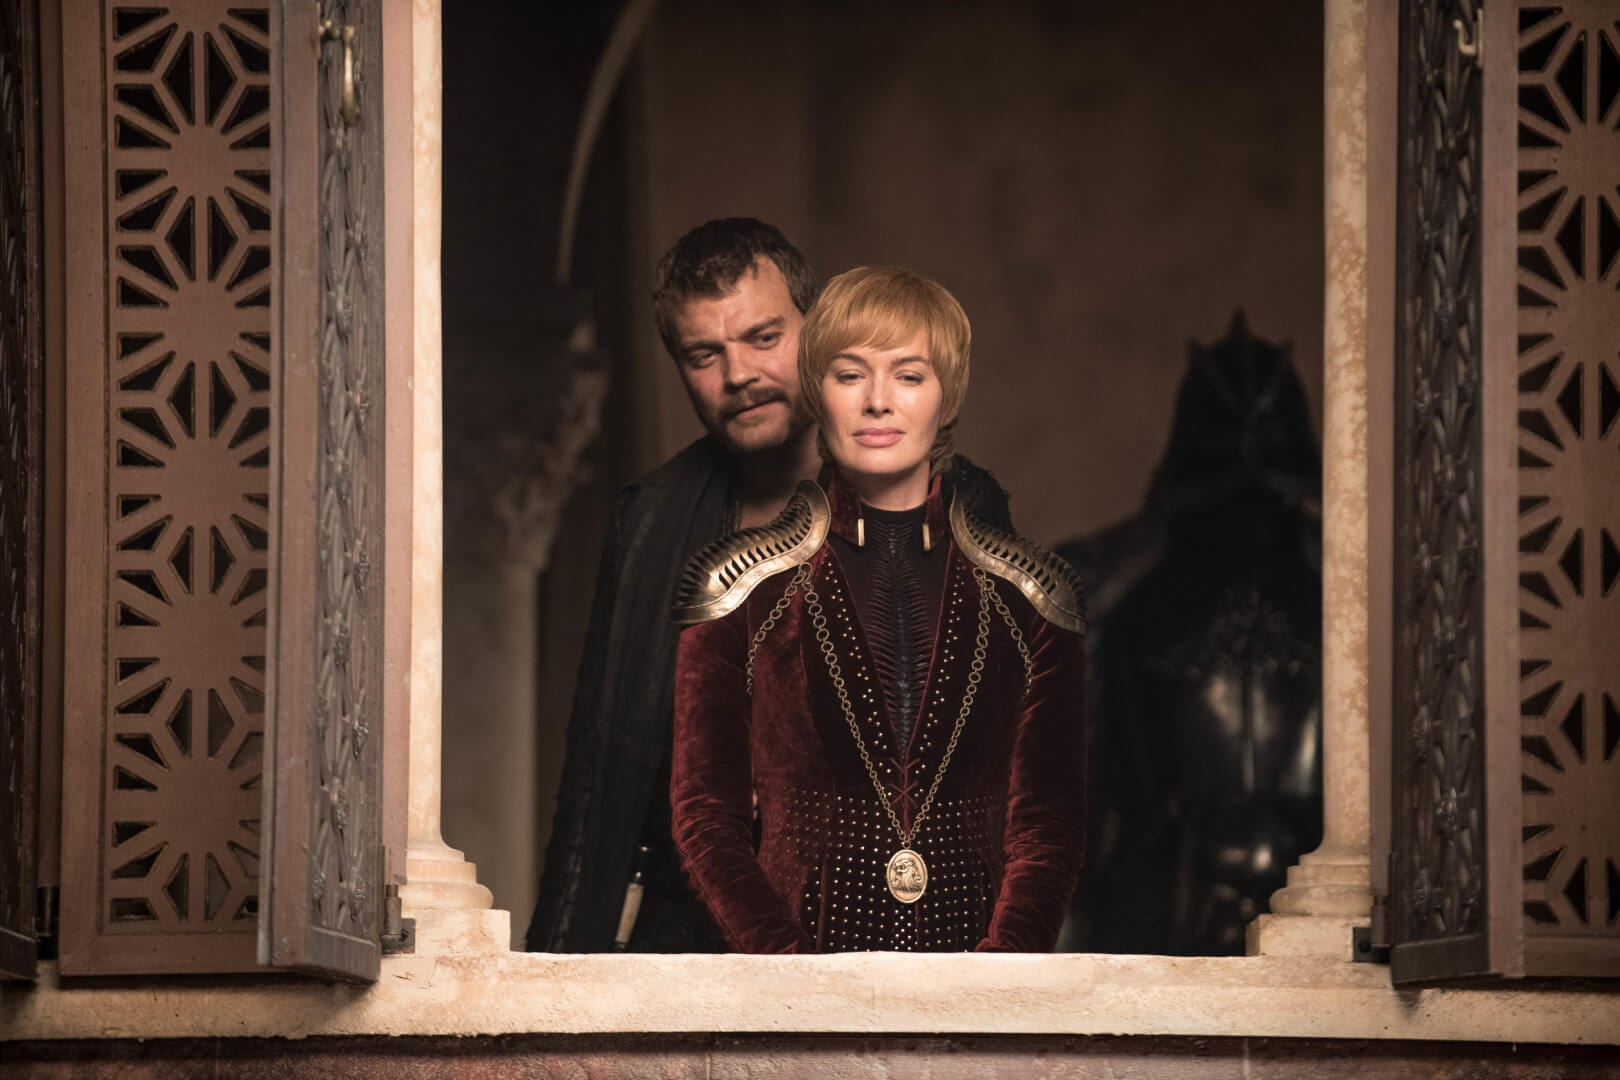 Game of thrones s8 ep 4 pre air images